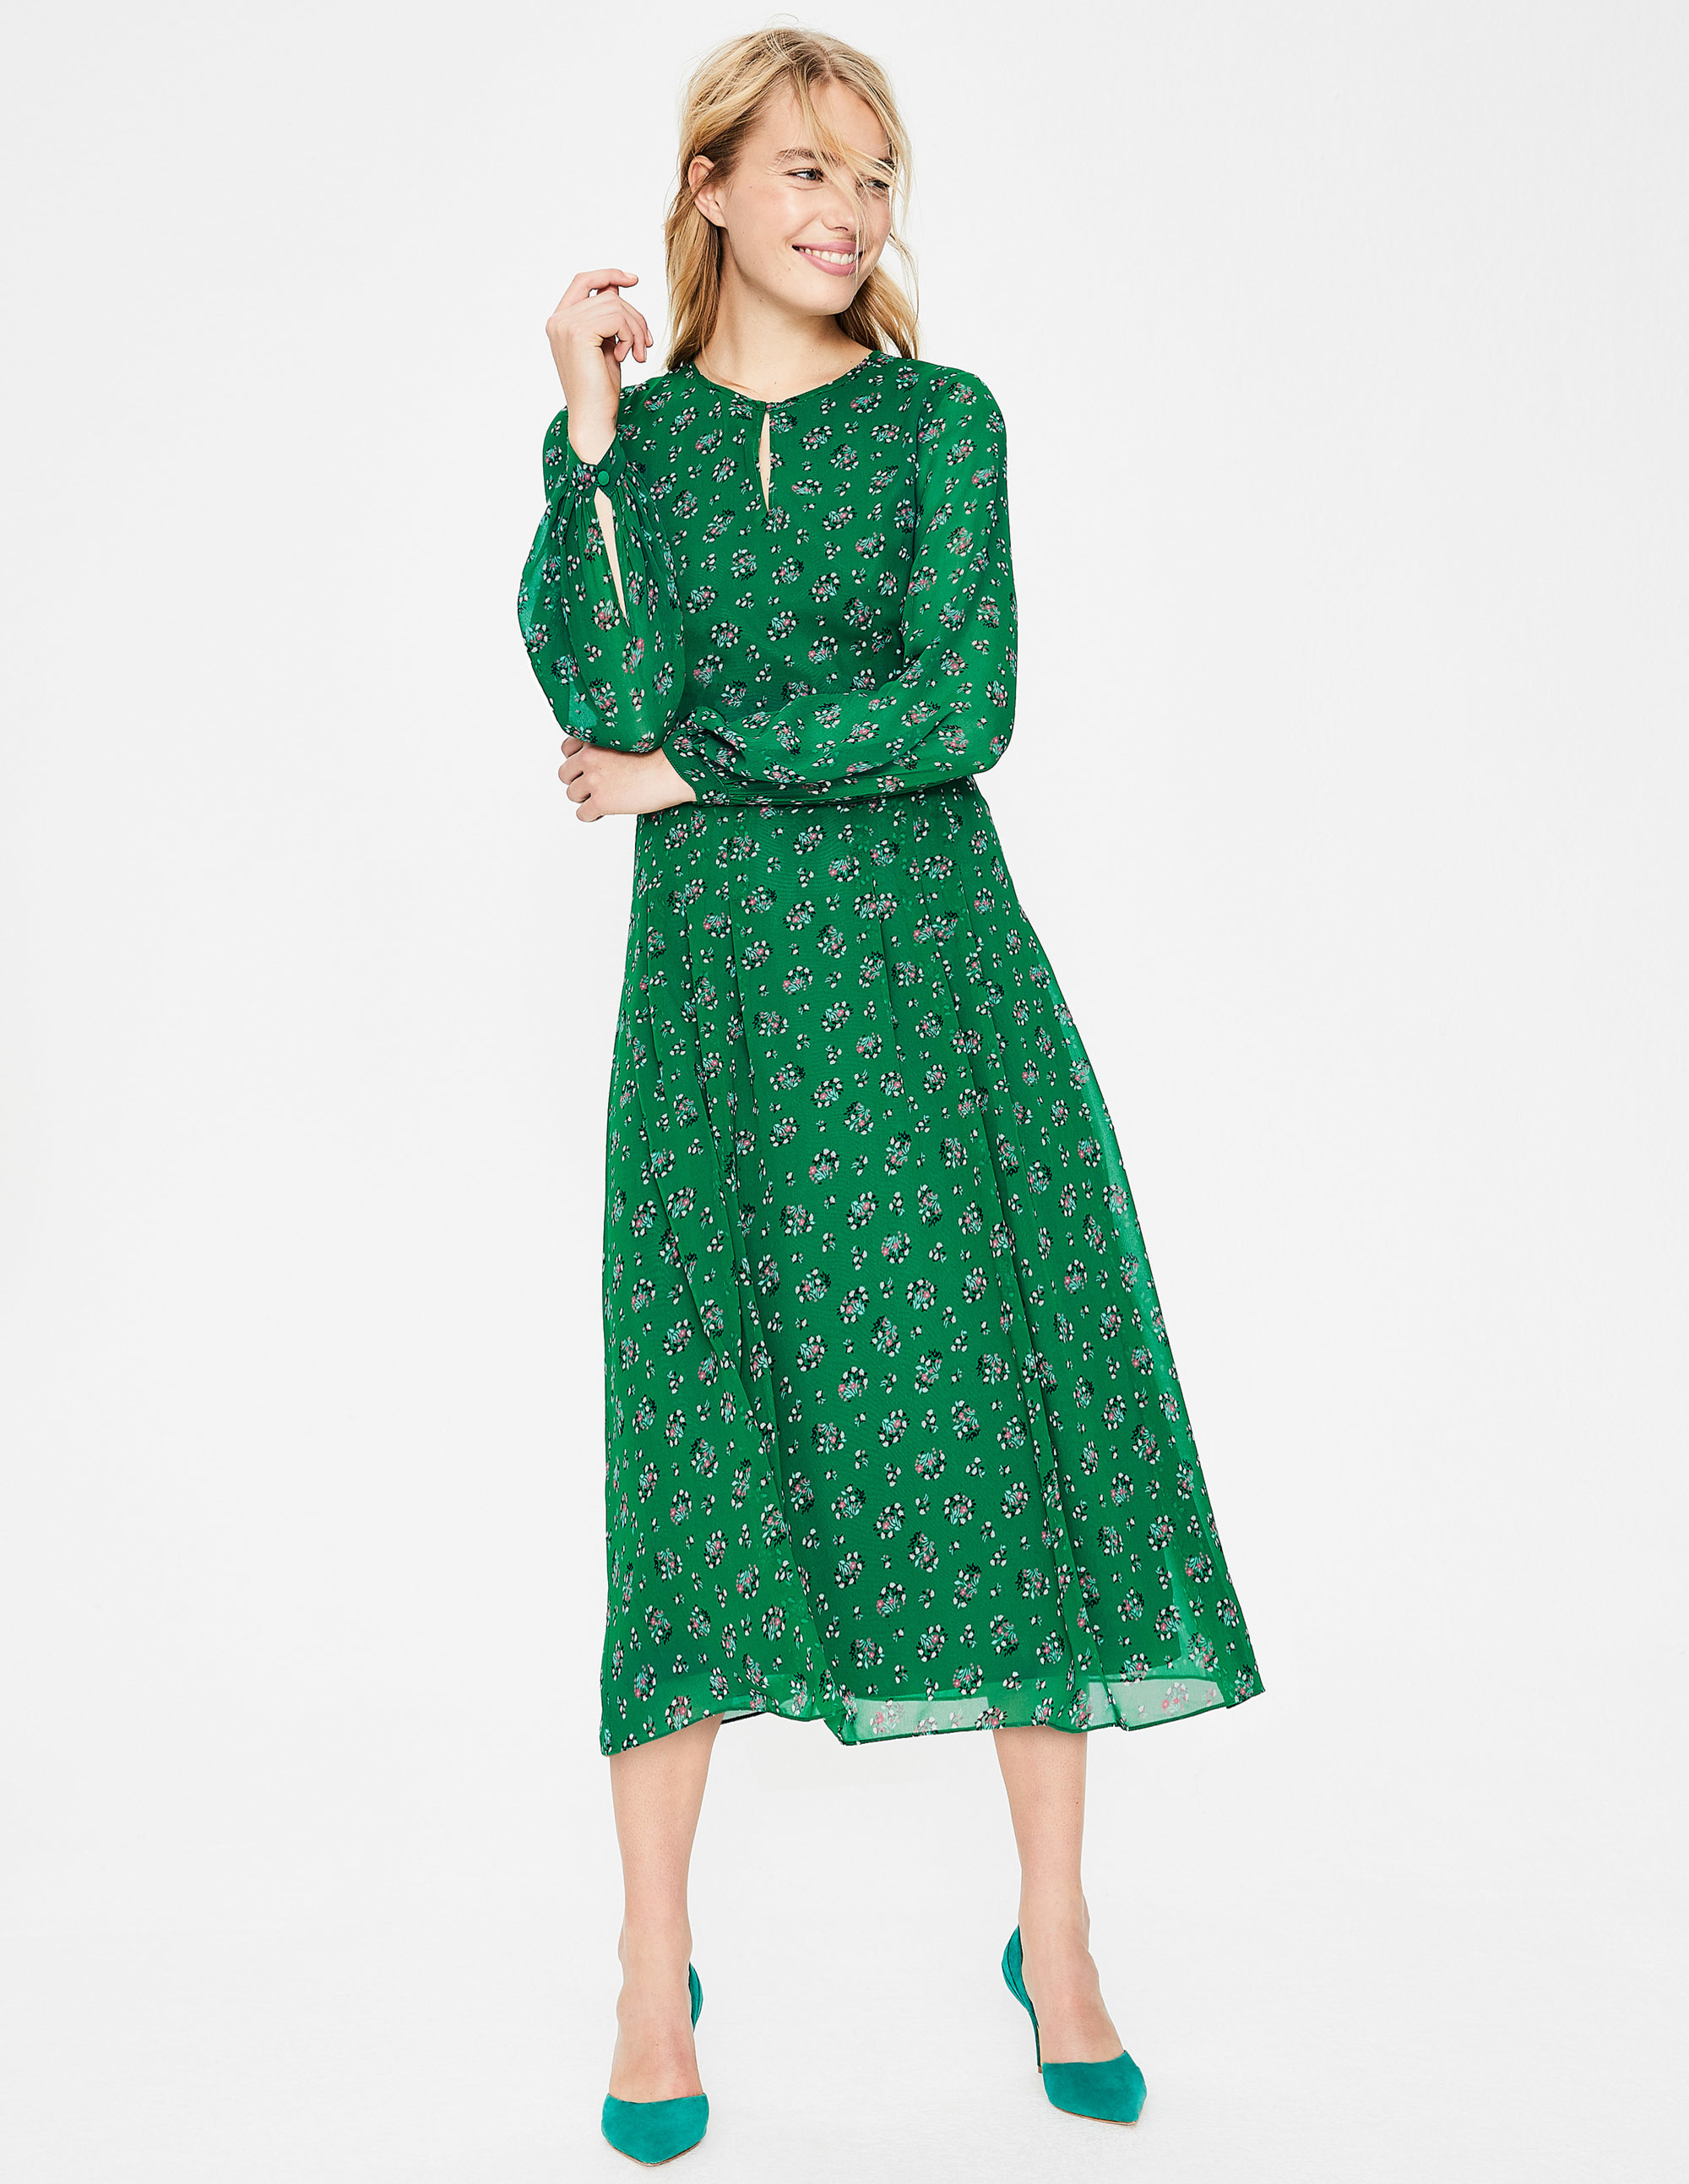 Boden Ada green midi dress